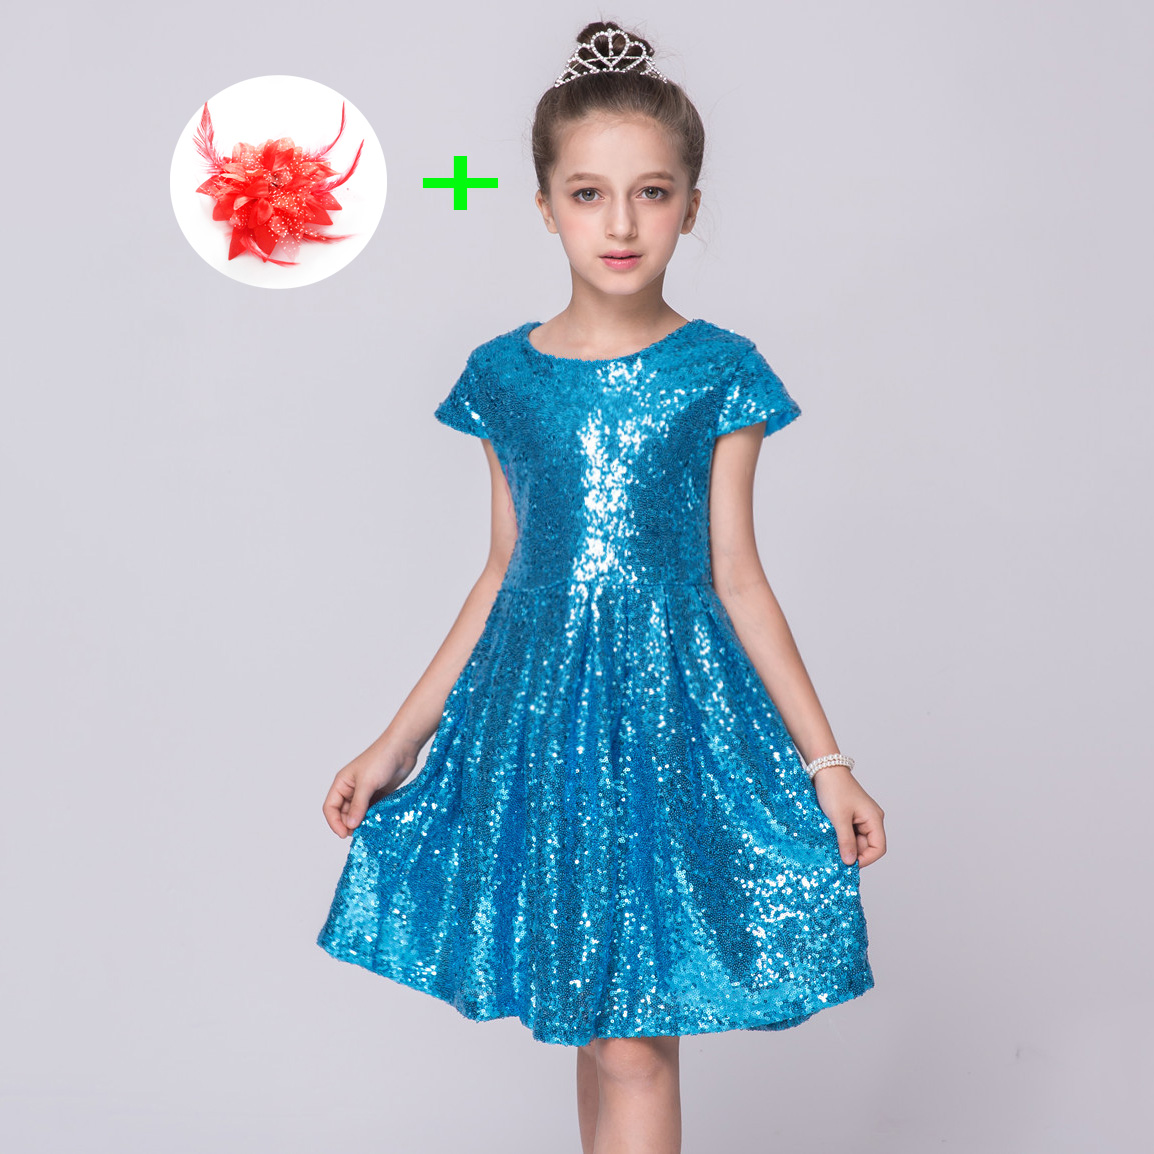 Children 2 To 8 10 Years Kids Baby Girls Clothing Dresses Sequins Princess Party Bling Knee Length Formal Evening Dresses